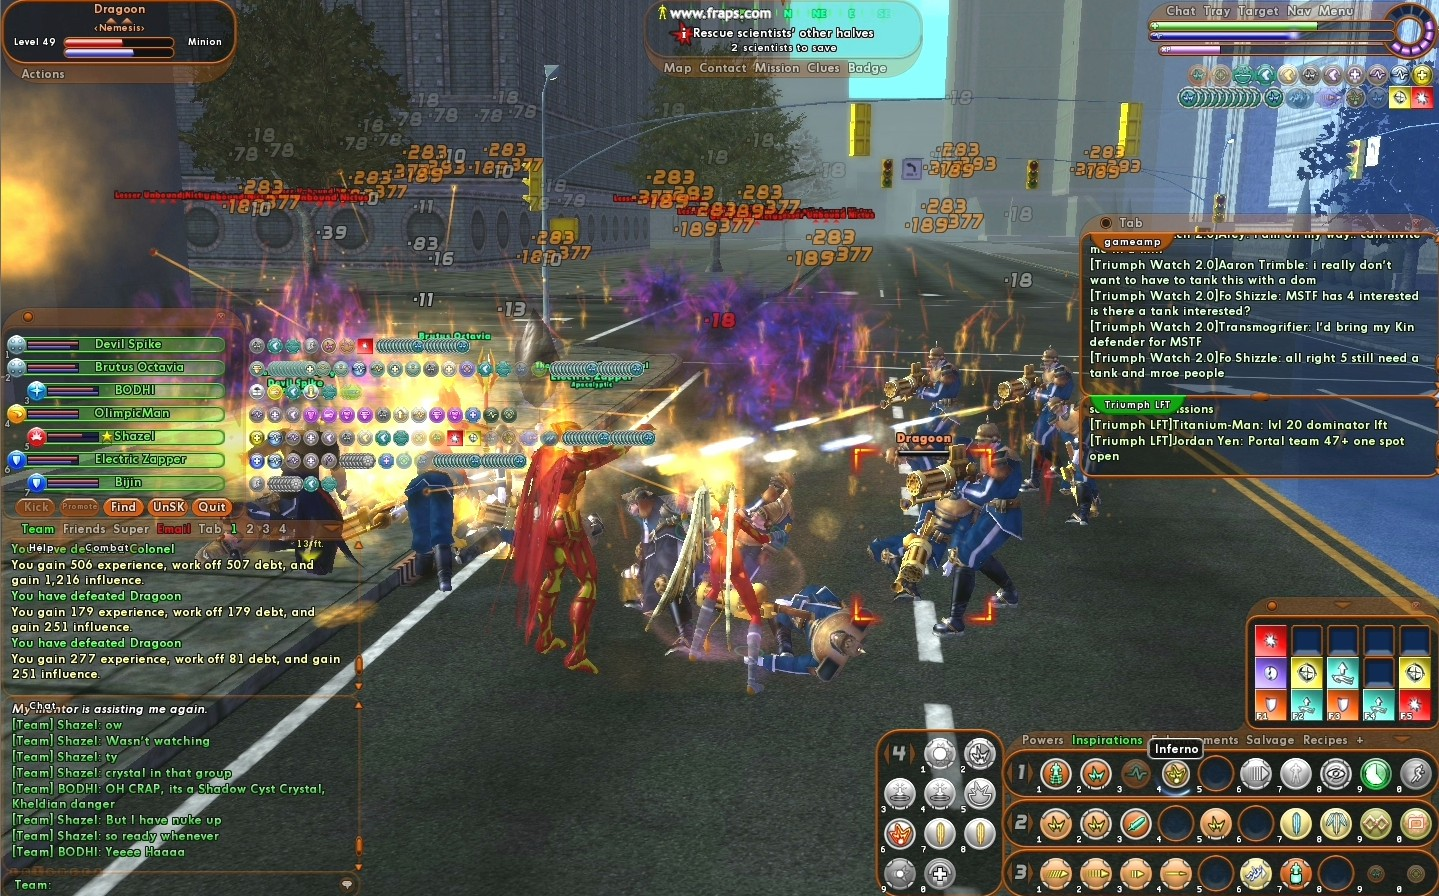 2008.09.27 11:22:02:62 CityOfHeroes (Video: 29.1Mb)